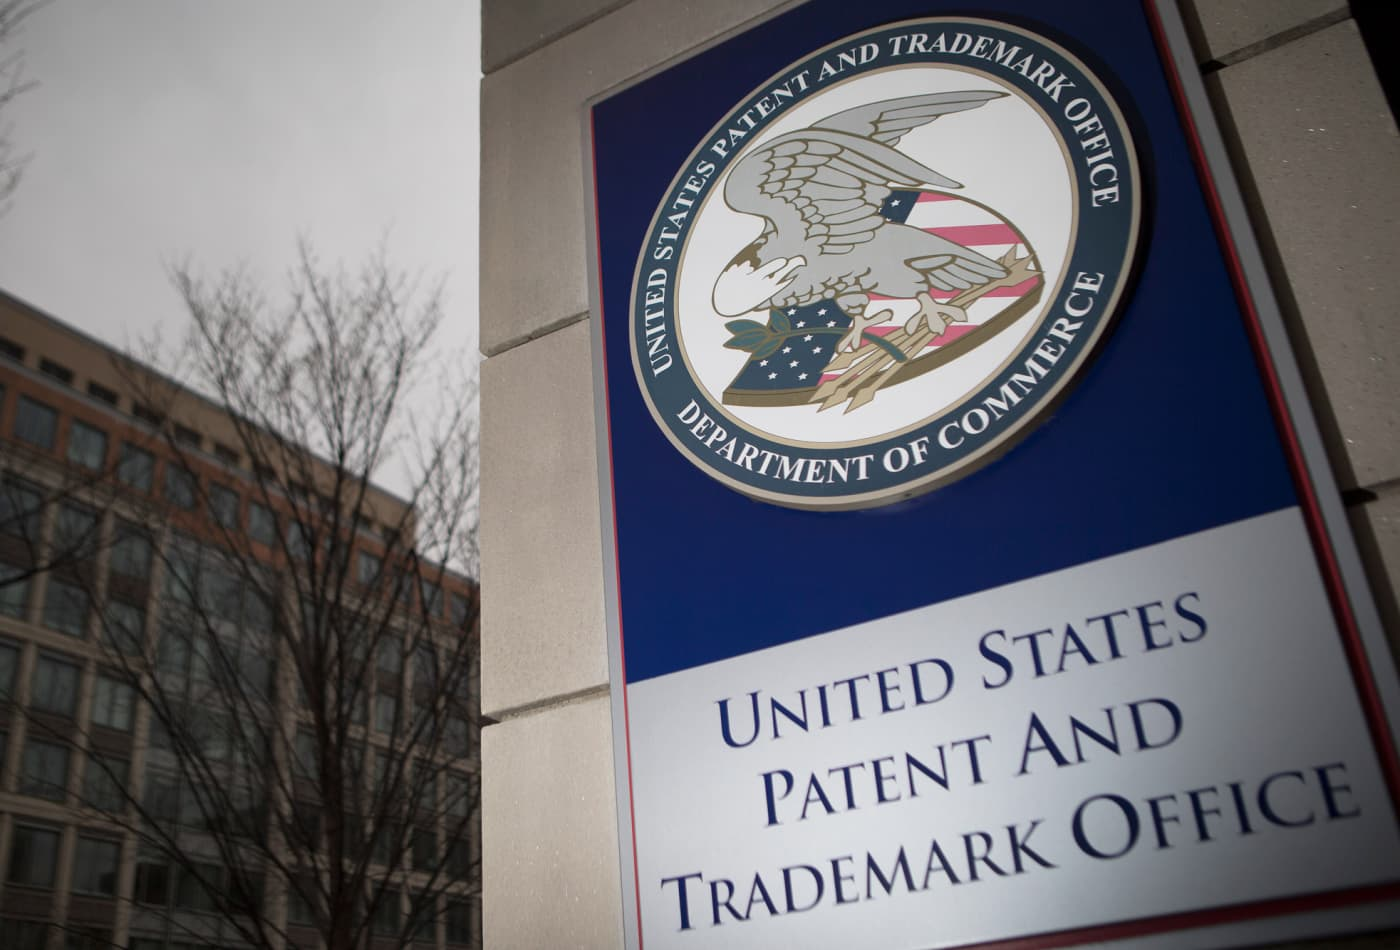 Why trademarks and patents are so valuable